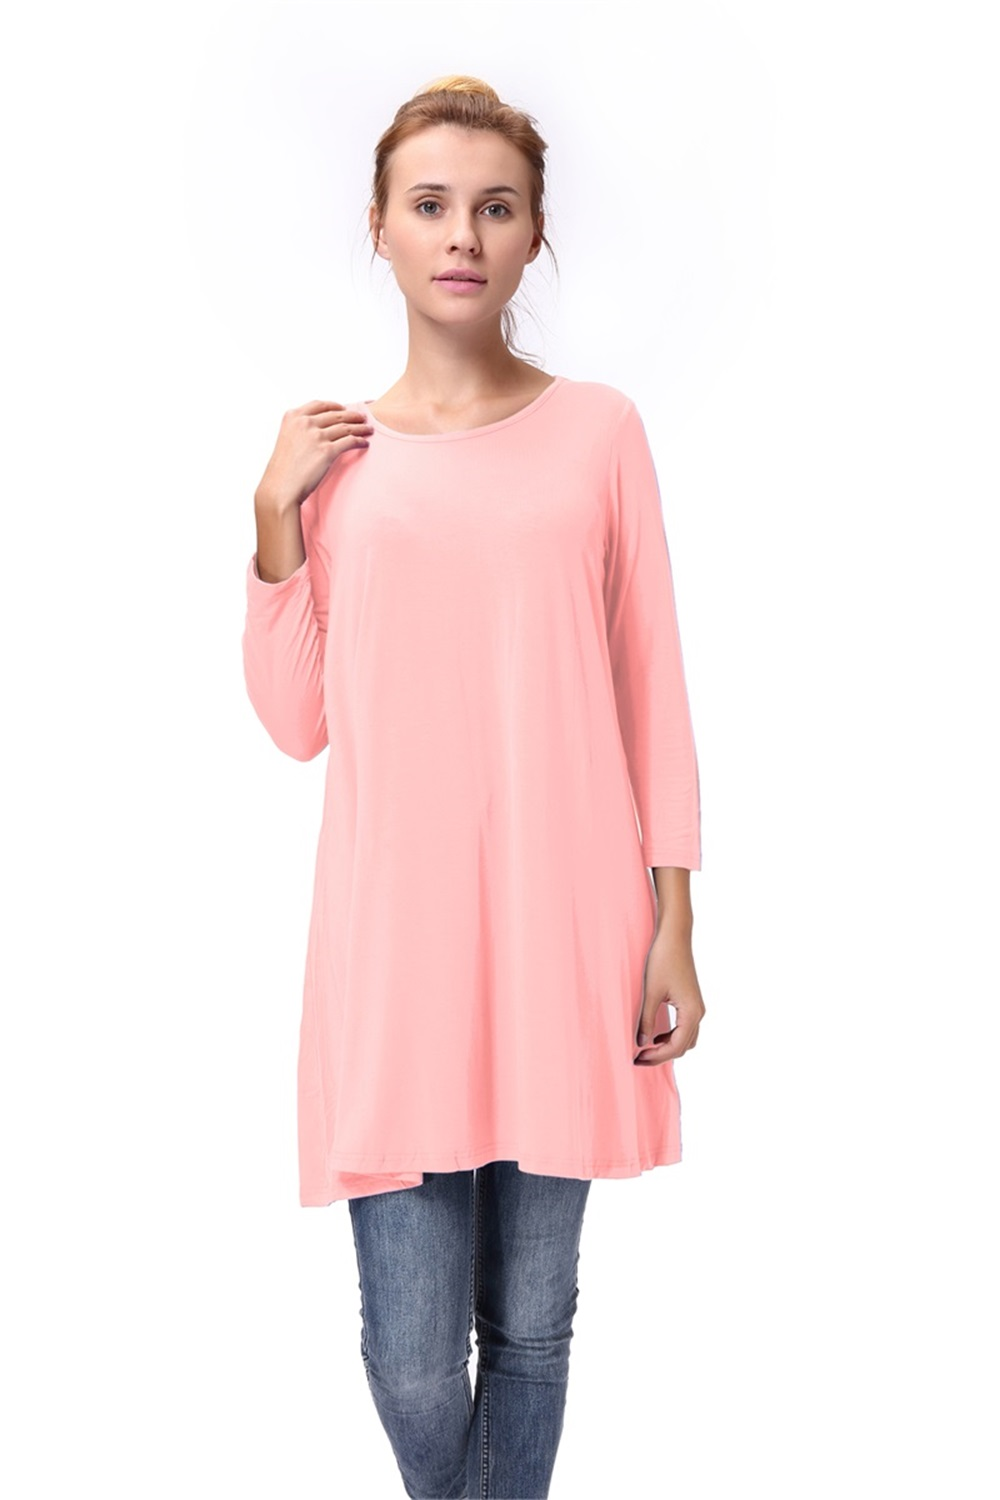 Women-Casual-Round-Neck-3-4-Long-Sleeve-Trapeze-Tunic-Top-Lady-Loose-Fit-Dress thumbnail 40